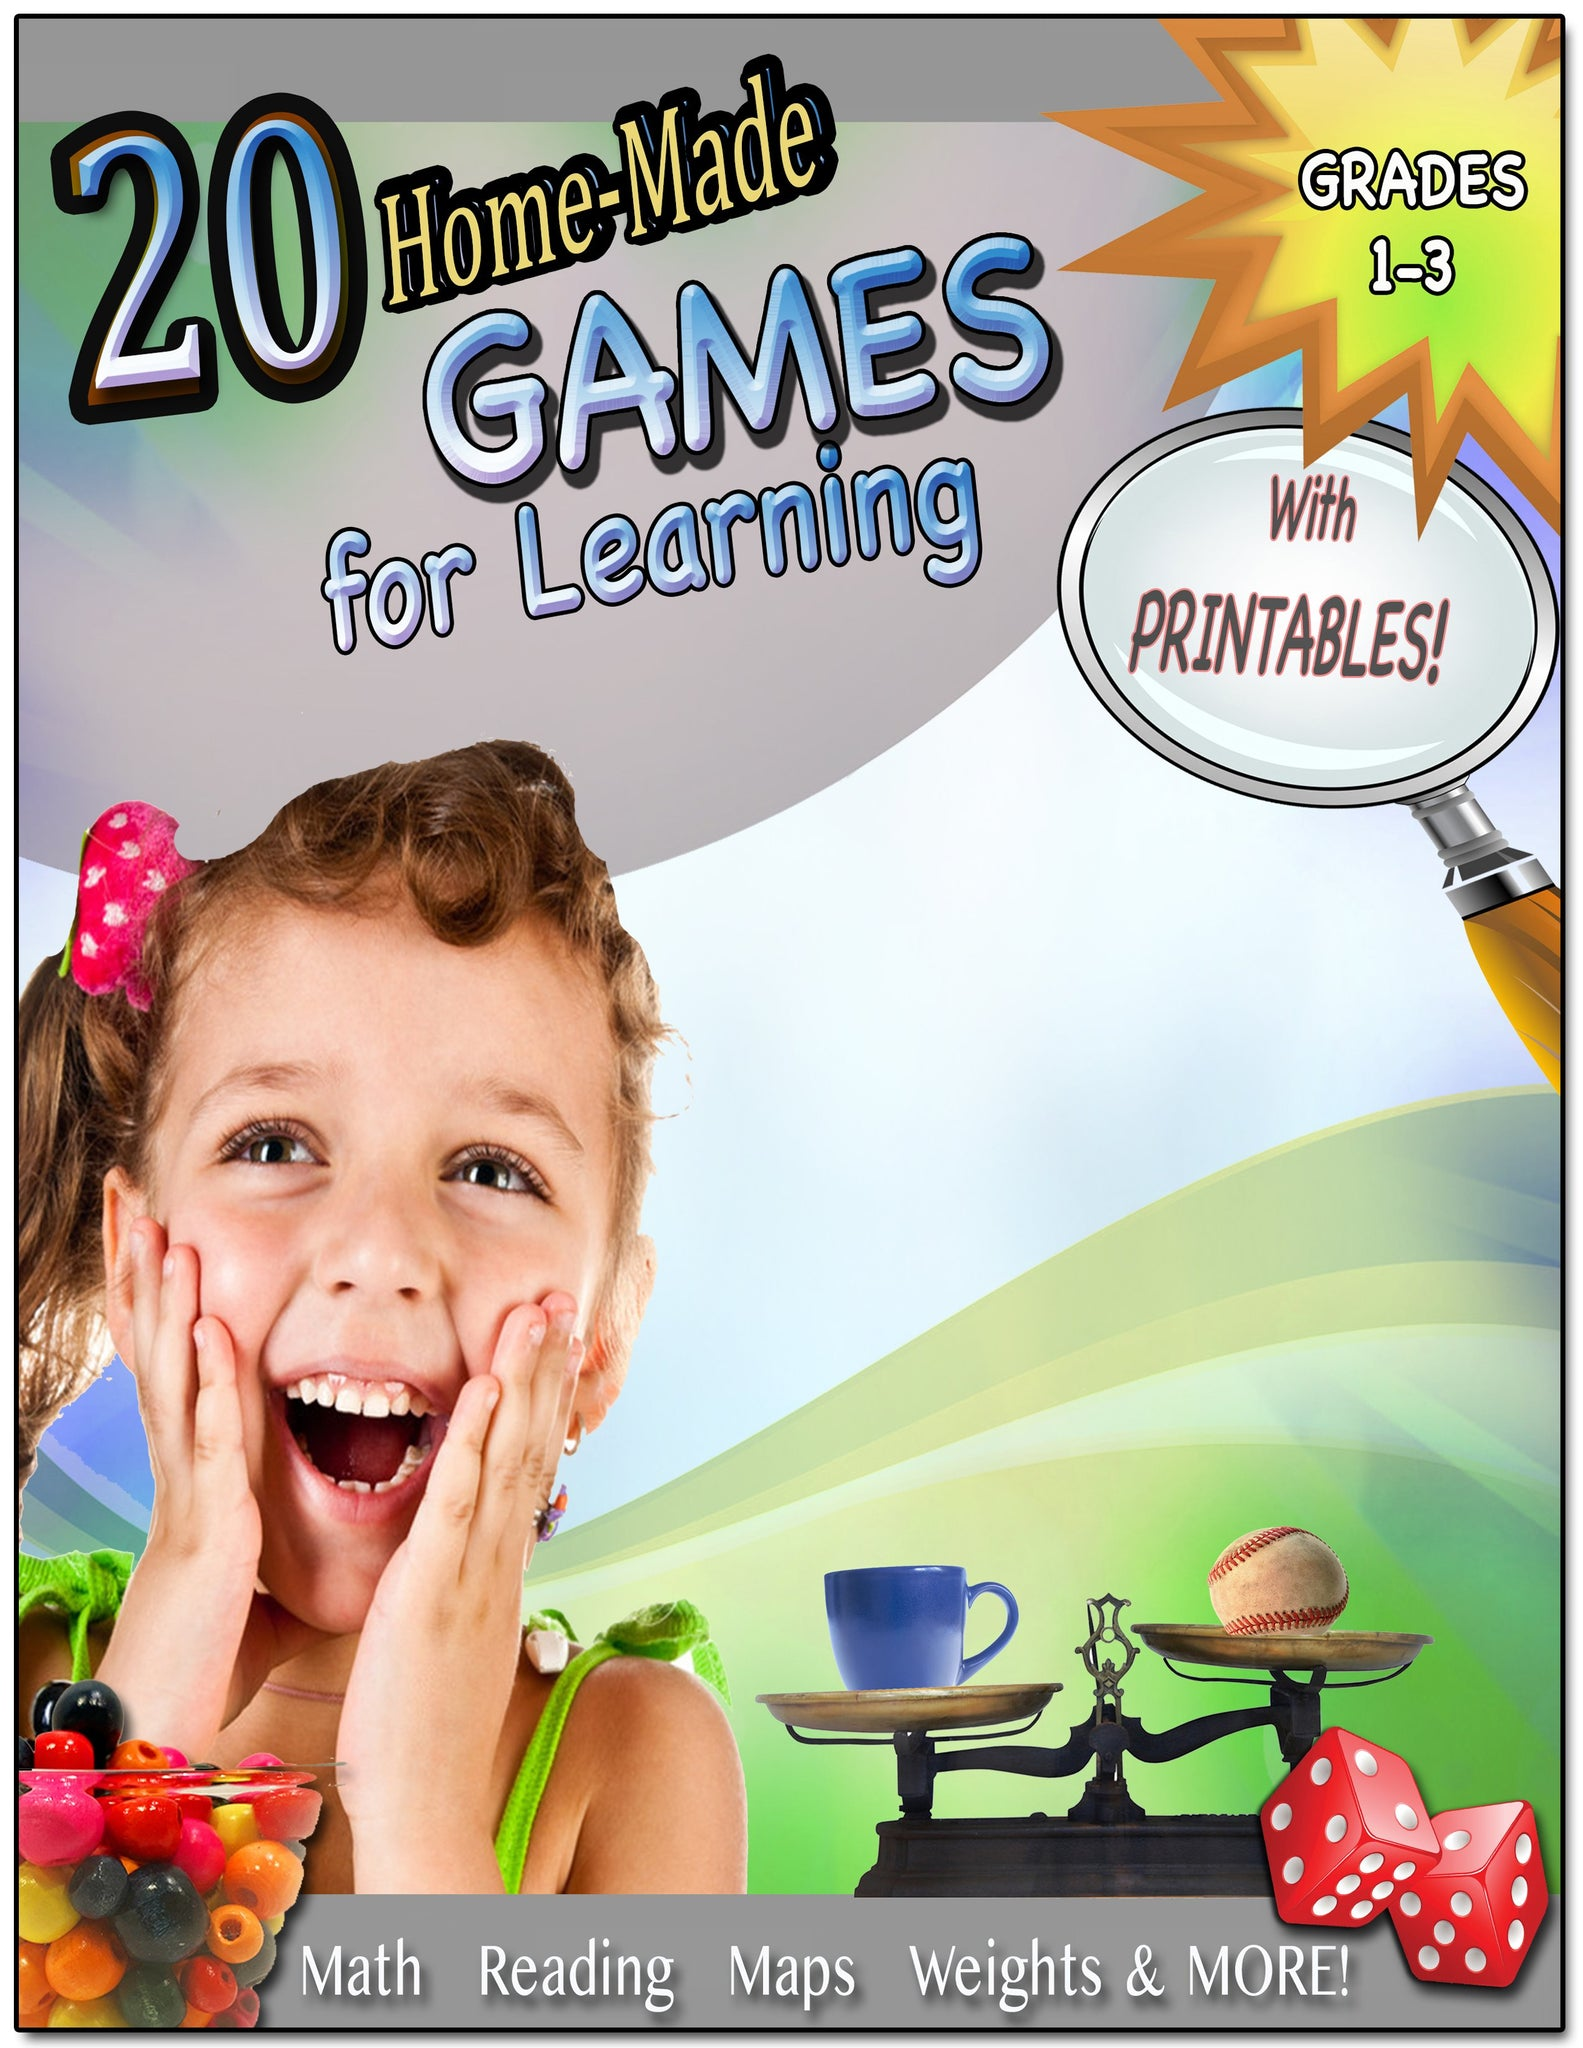 20 Home-made games for learning